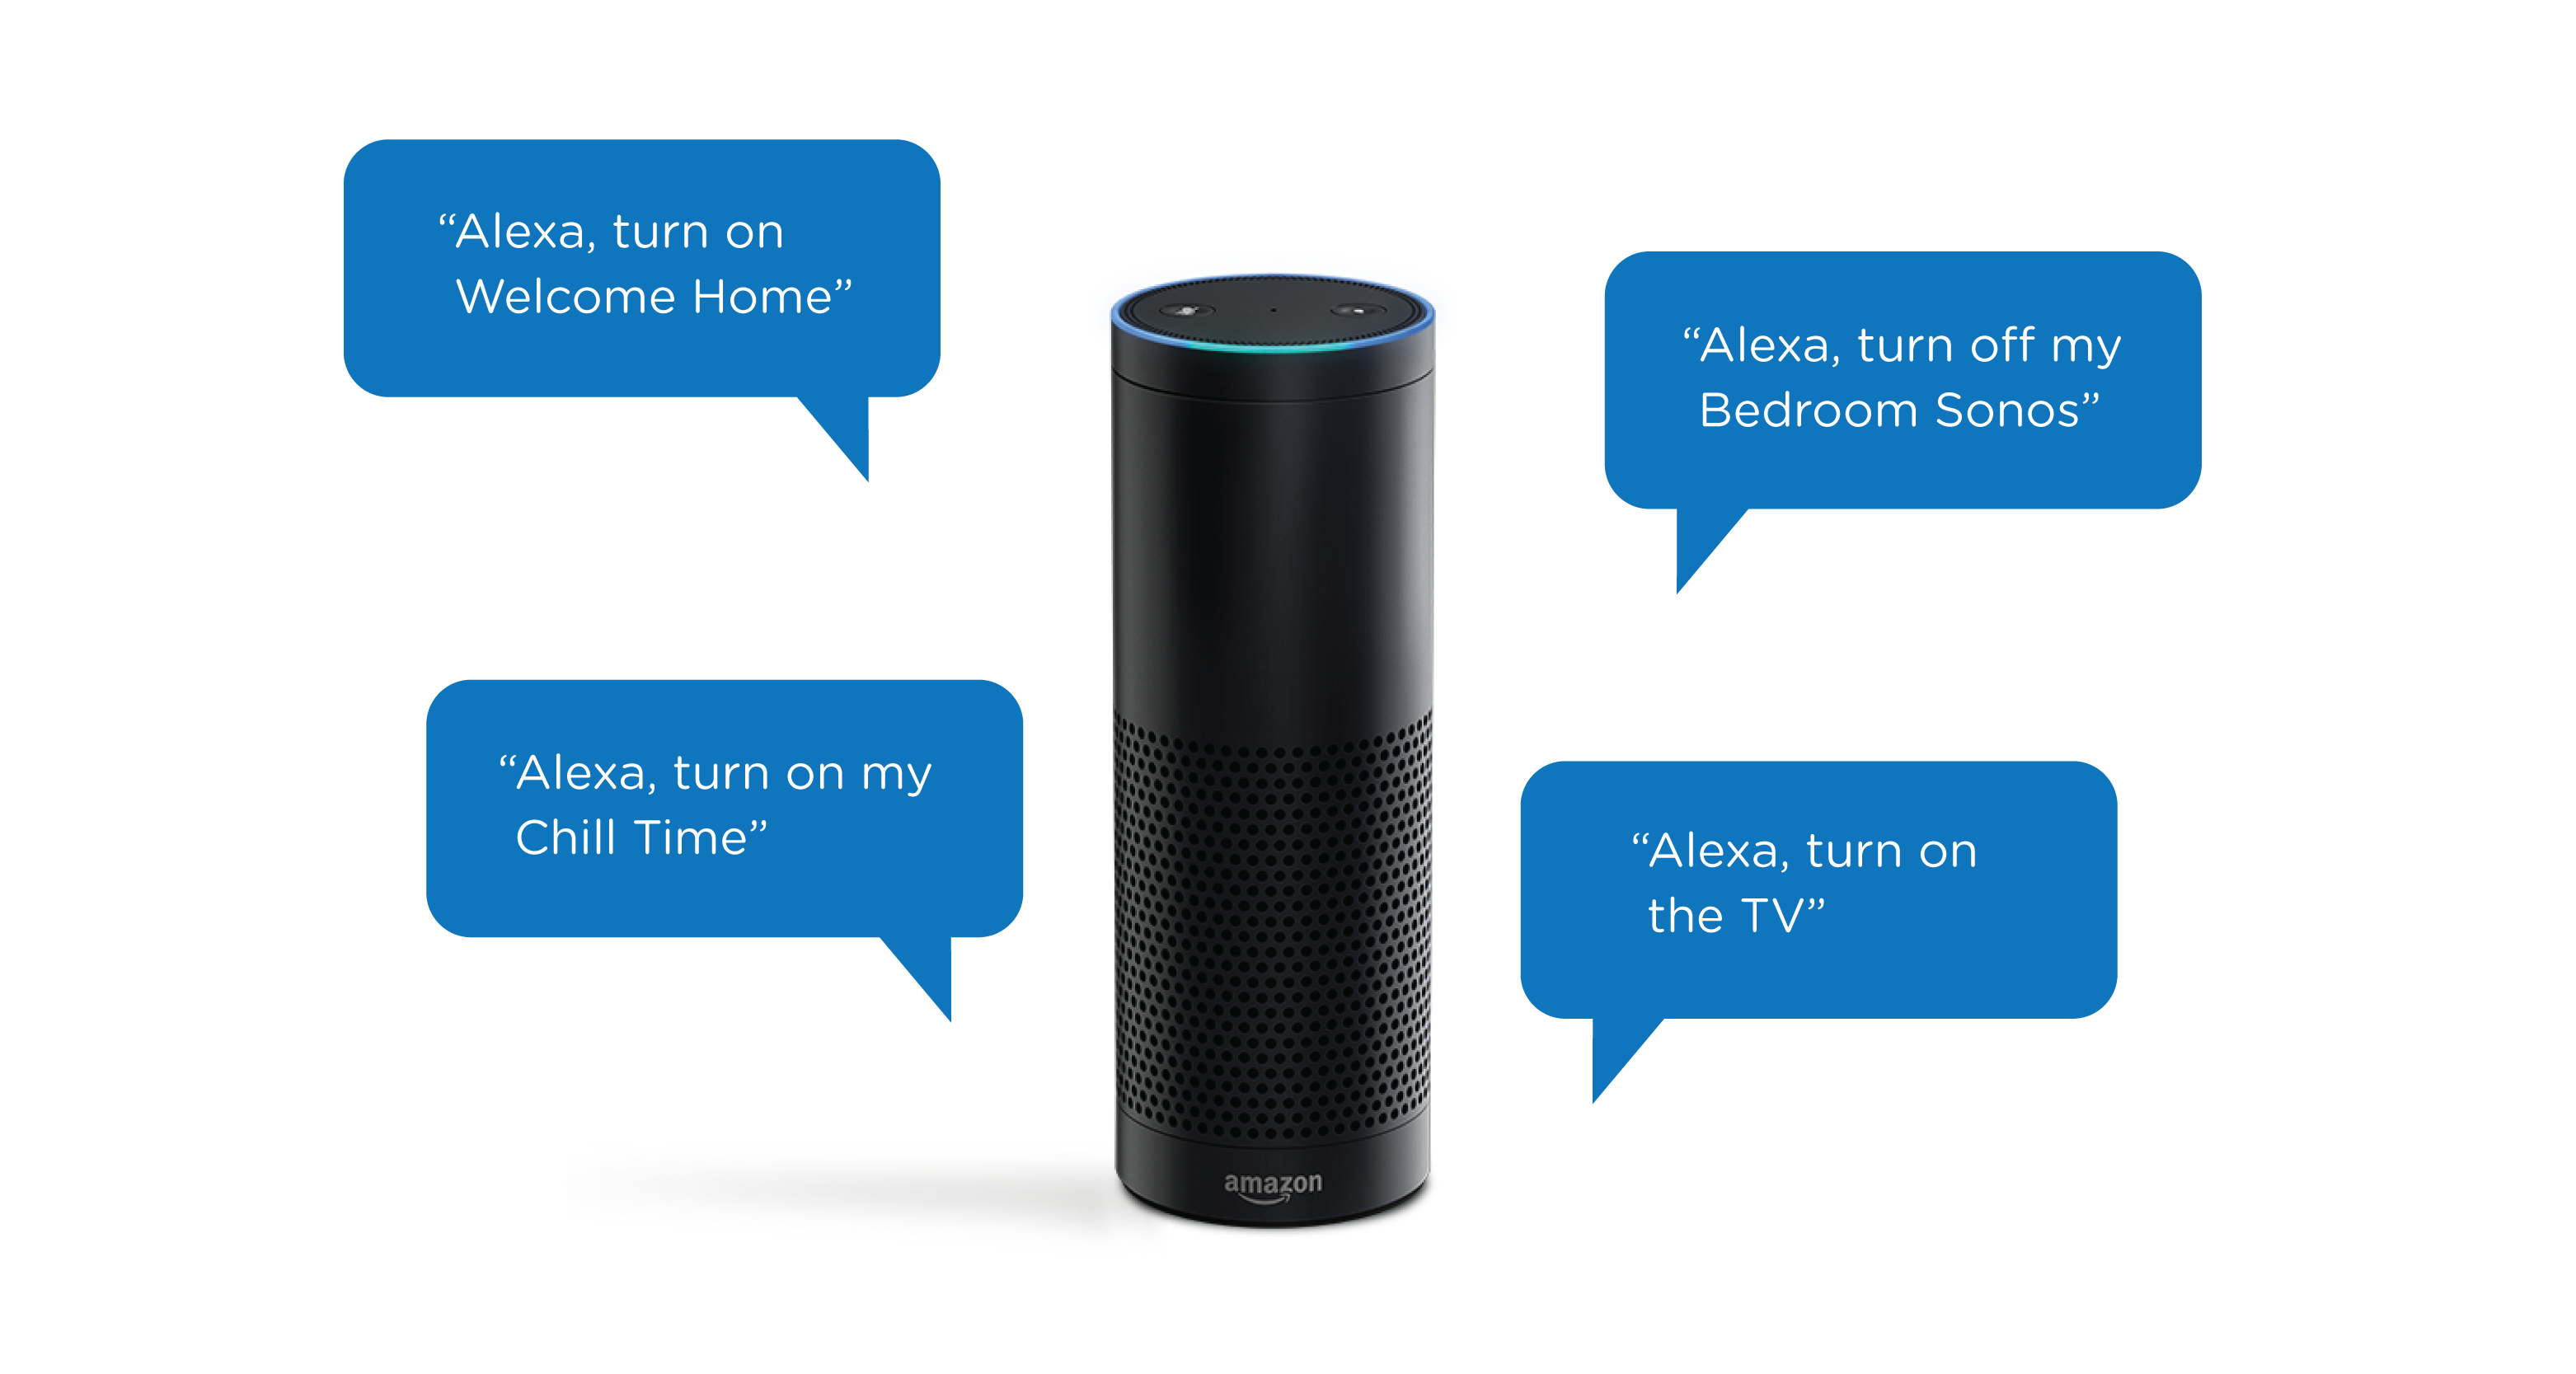 Amazon-Echo-Blog_quotes_2-01.png